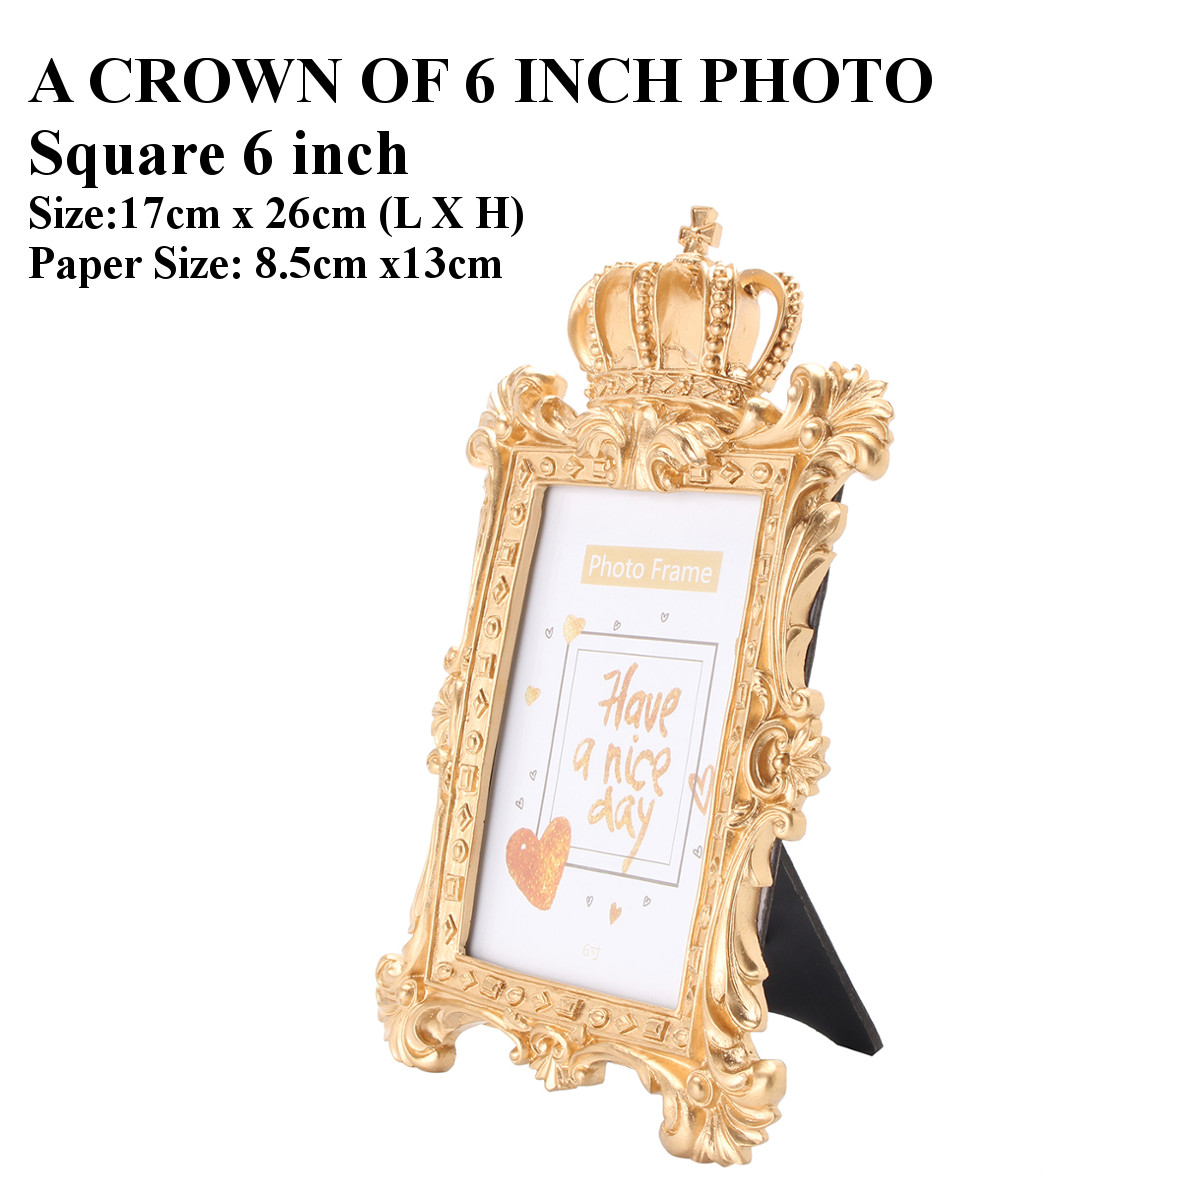 Gold crown home decor picture photo frame baroque luxury for Baroque style home accessories